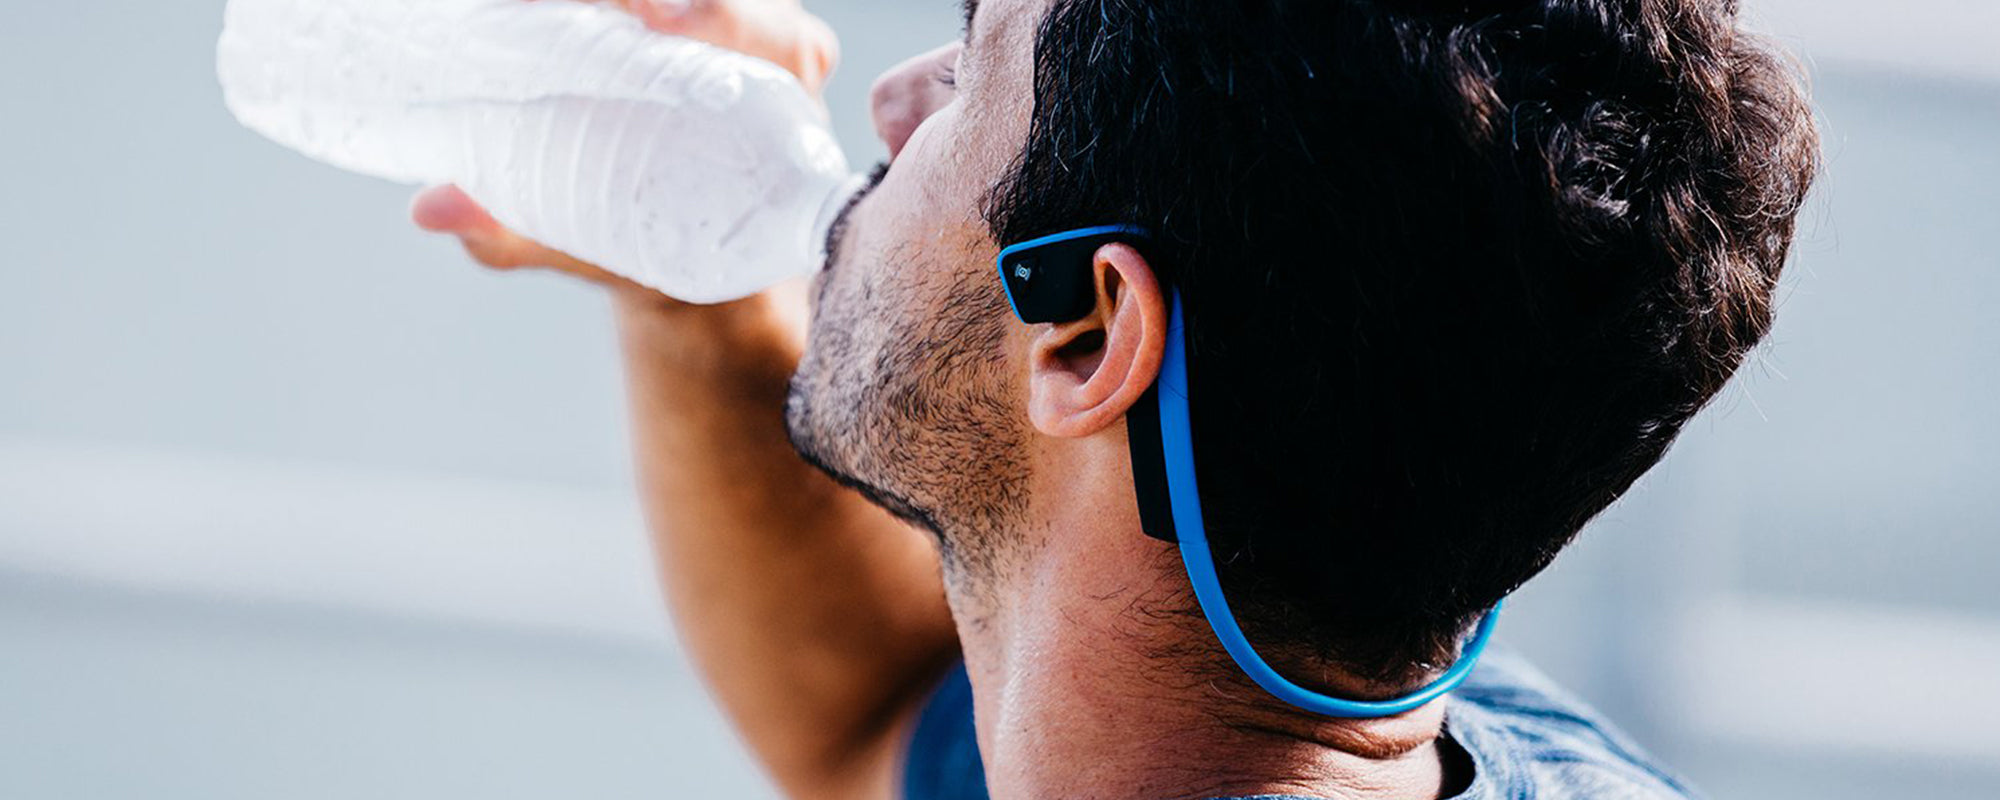 4 Tips For Staying Hydrated This Summer